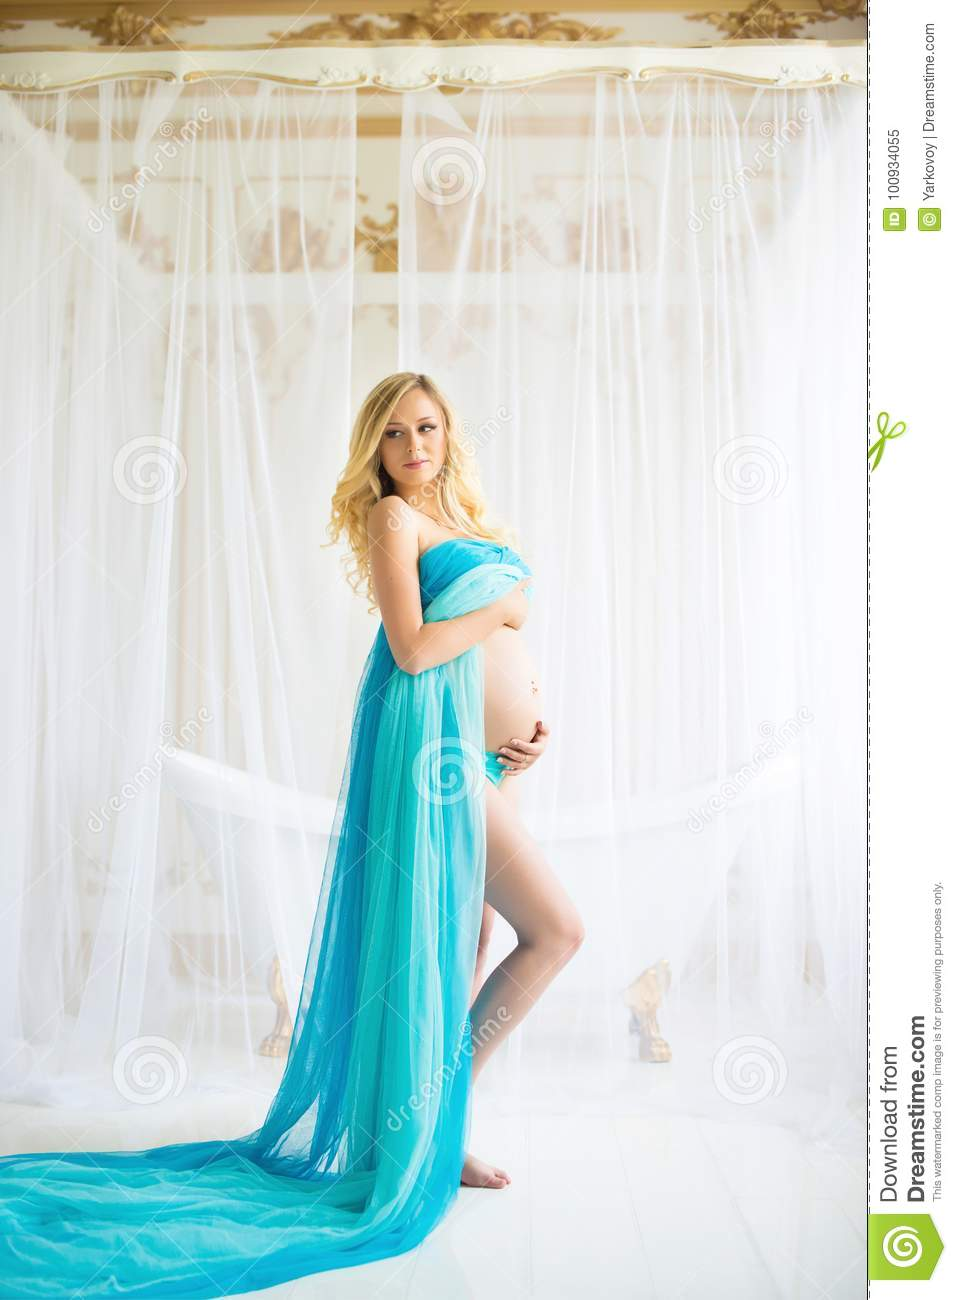 Hotgirlswithtattoos Naked Beautiful Pregnancy Photos